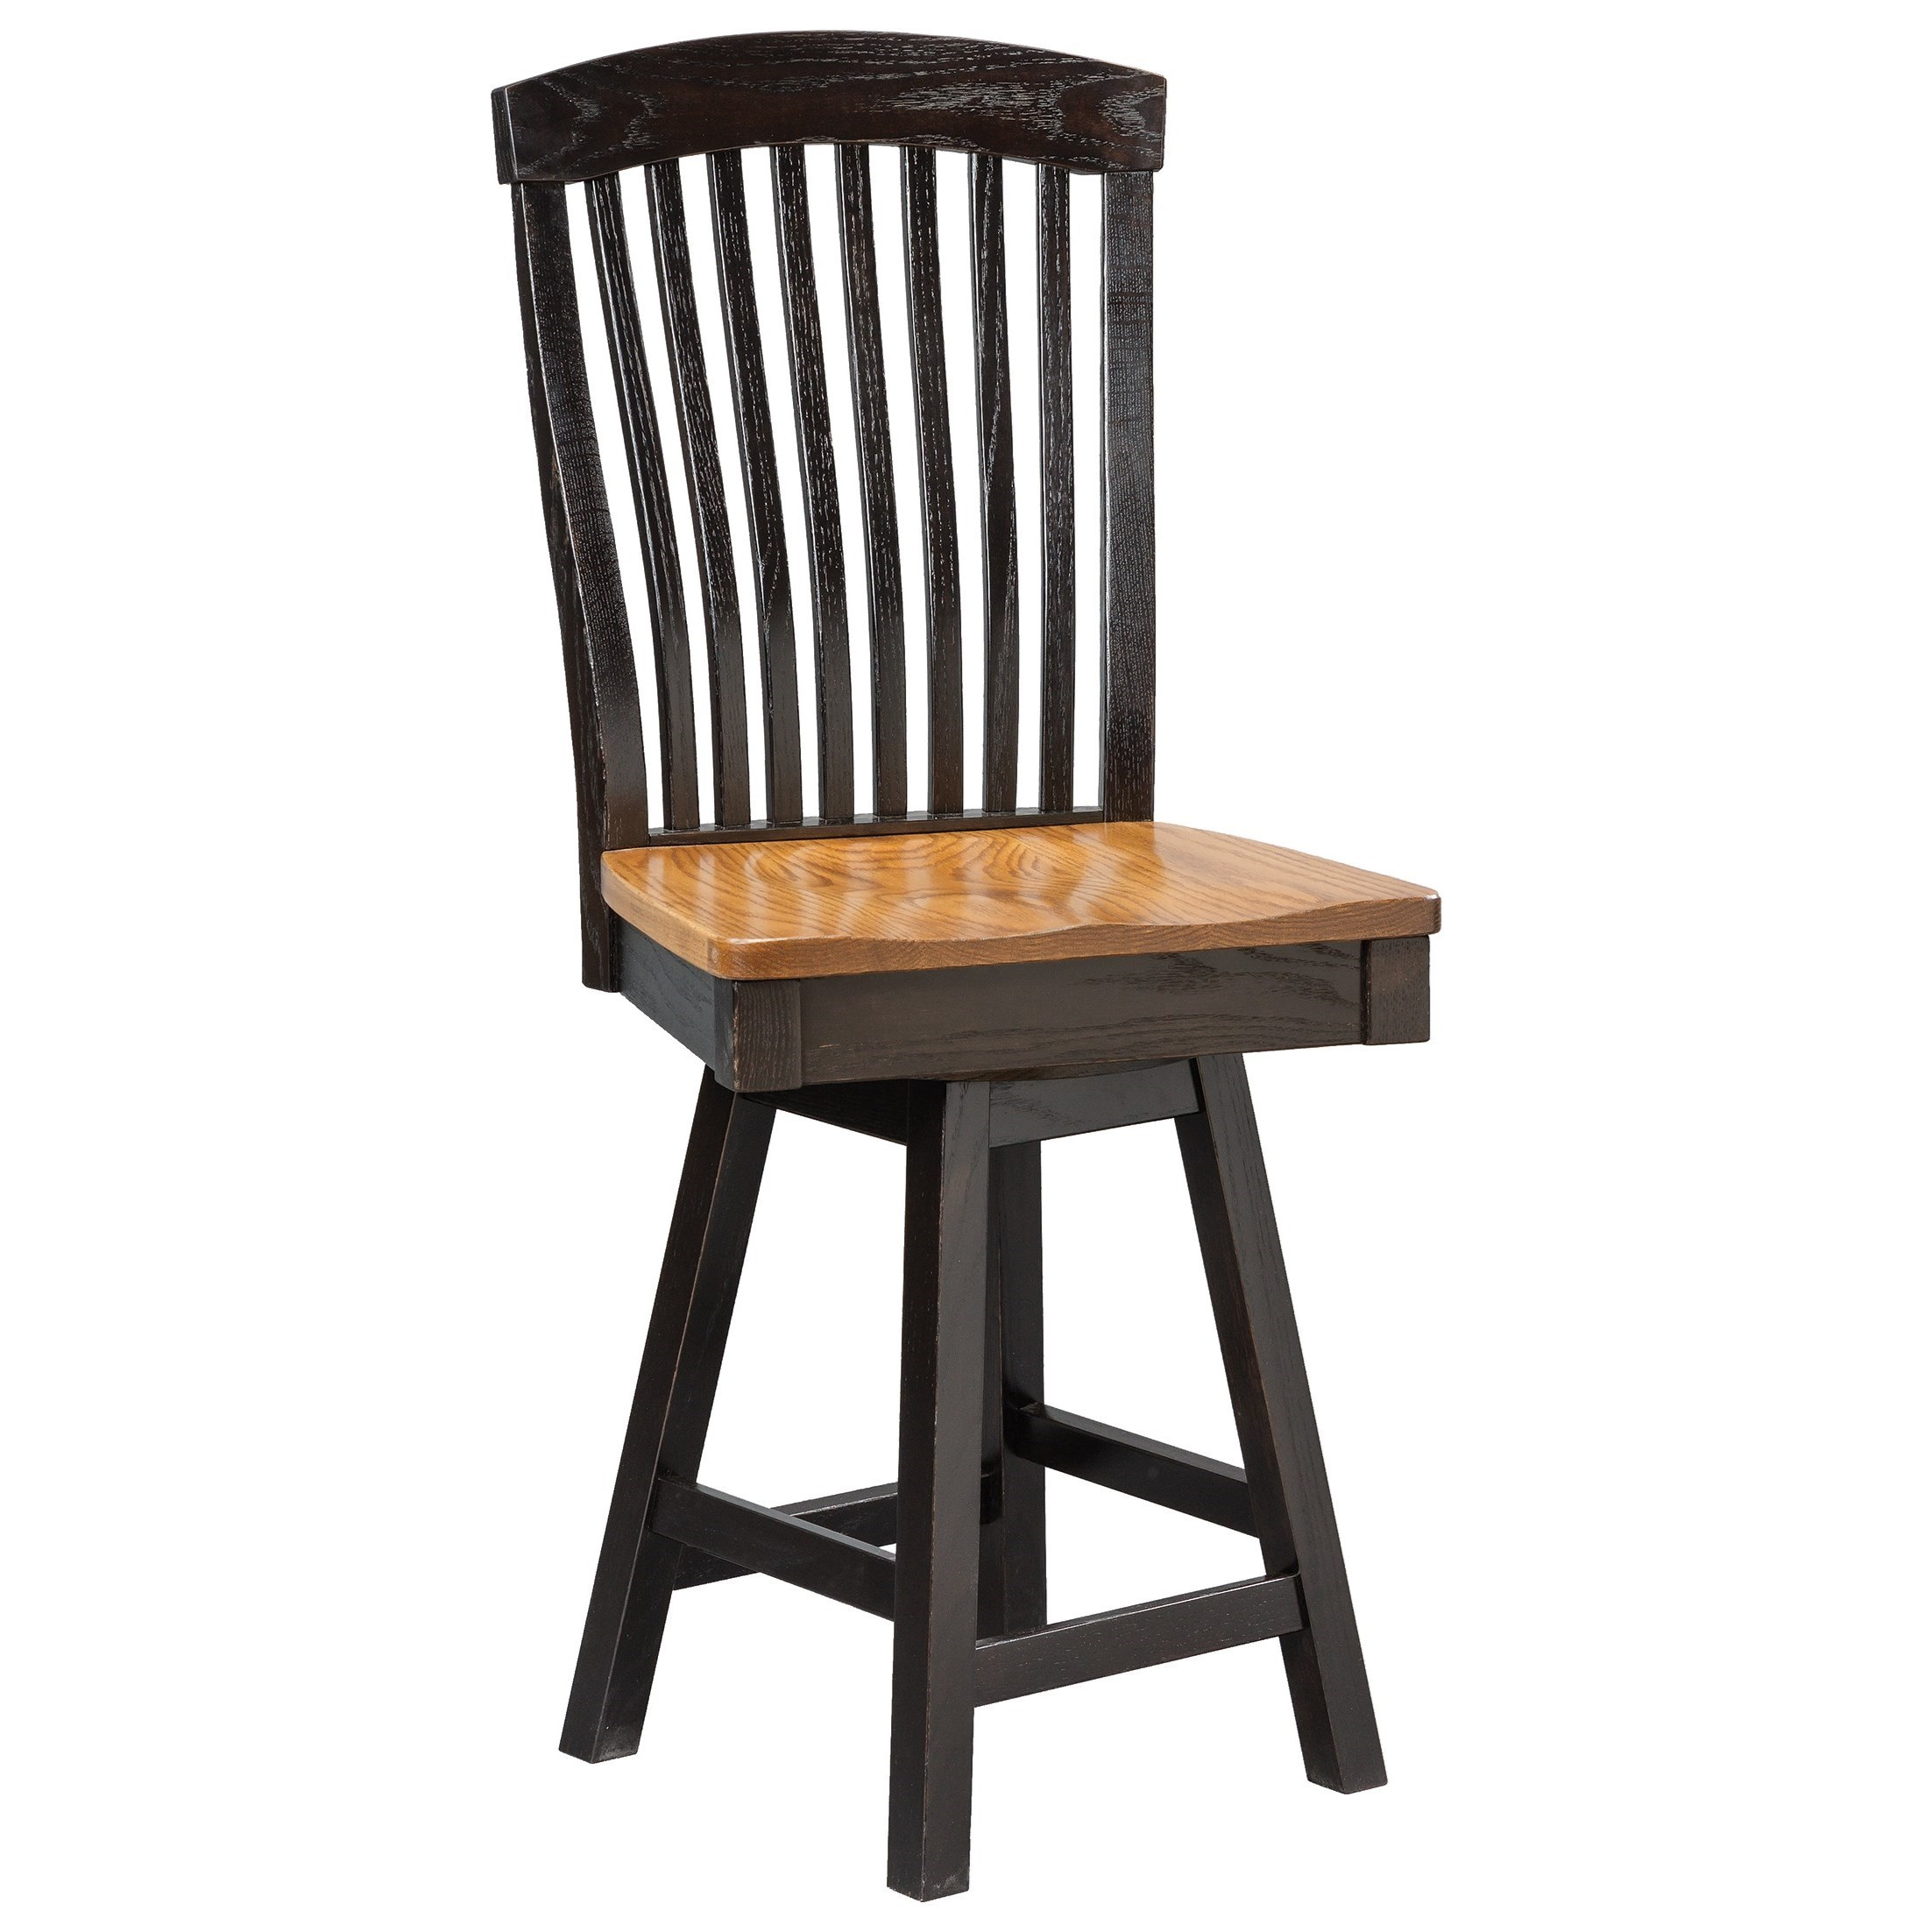 Daniel S Amish Chairs And Barstools Empire Swivel Counter